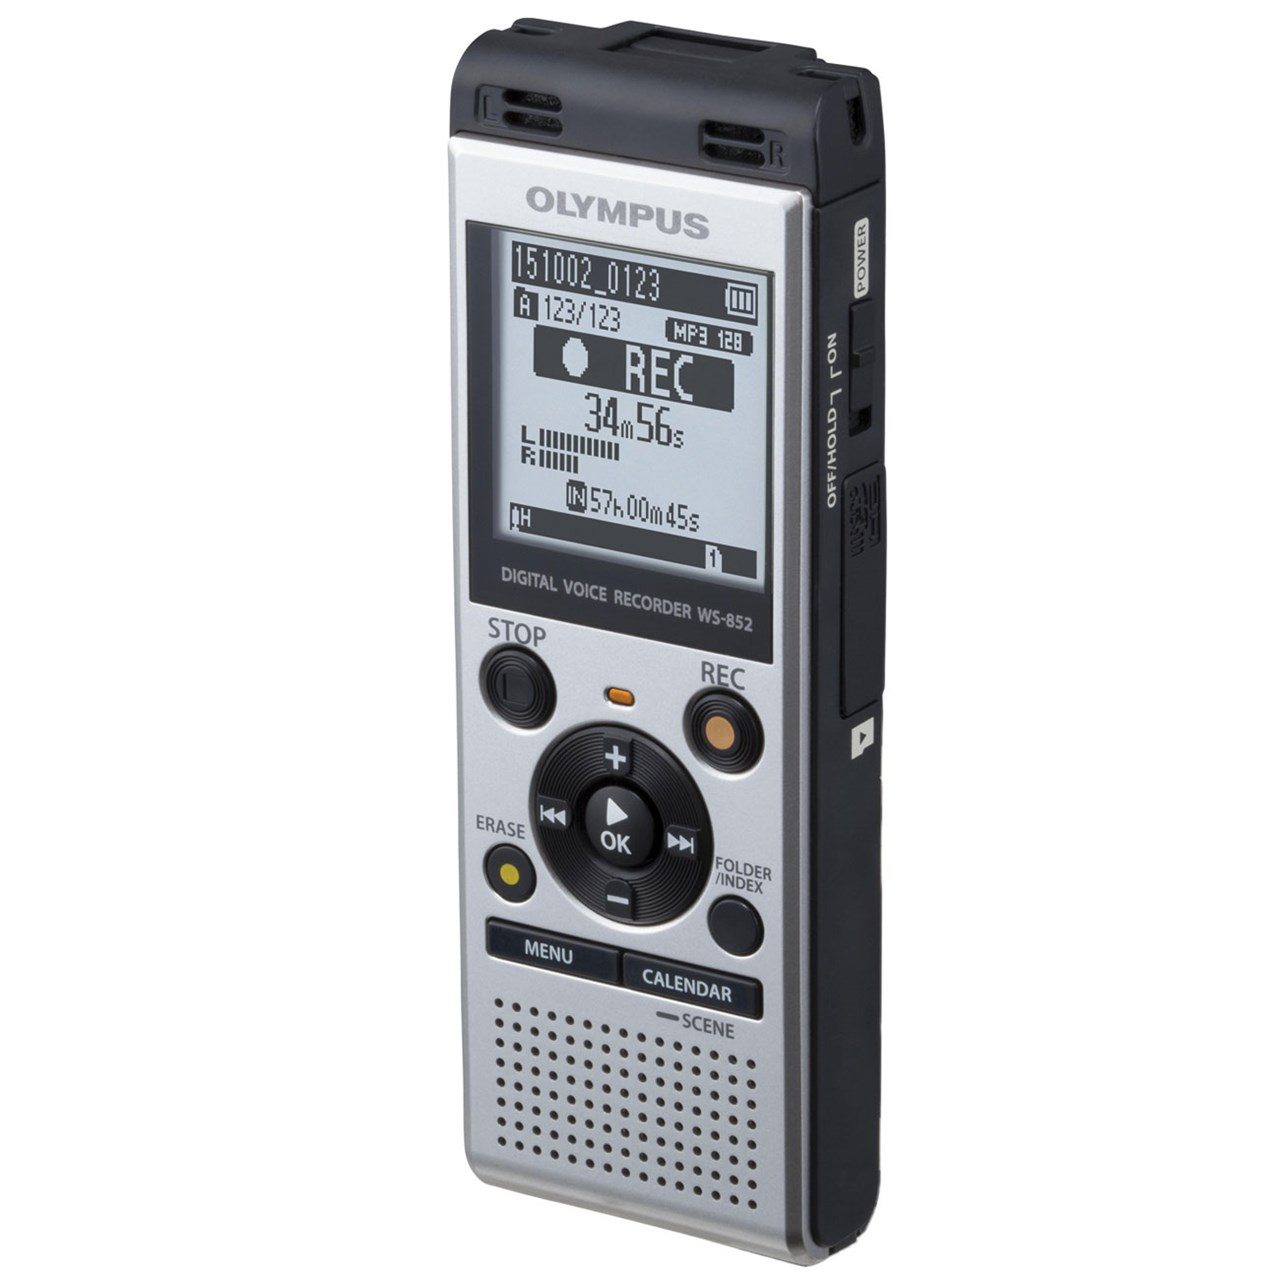 maxiaids olympus ws 852 stereo digital voice mp3 recorder 4gb. Black Bedroom Furniture Sets. Home Design Ideas